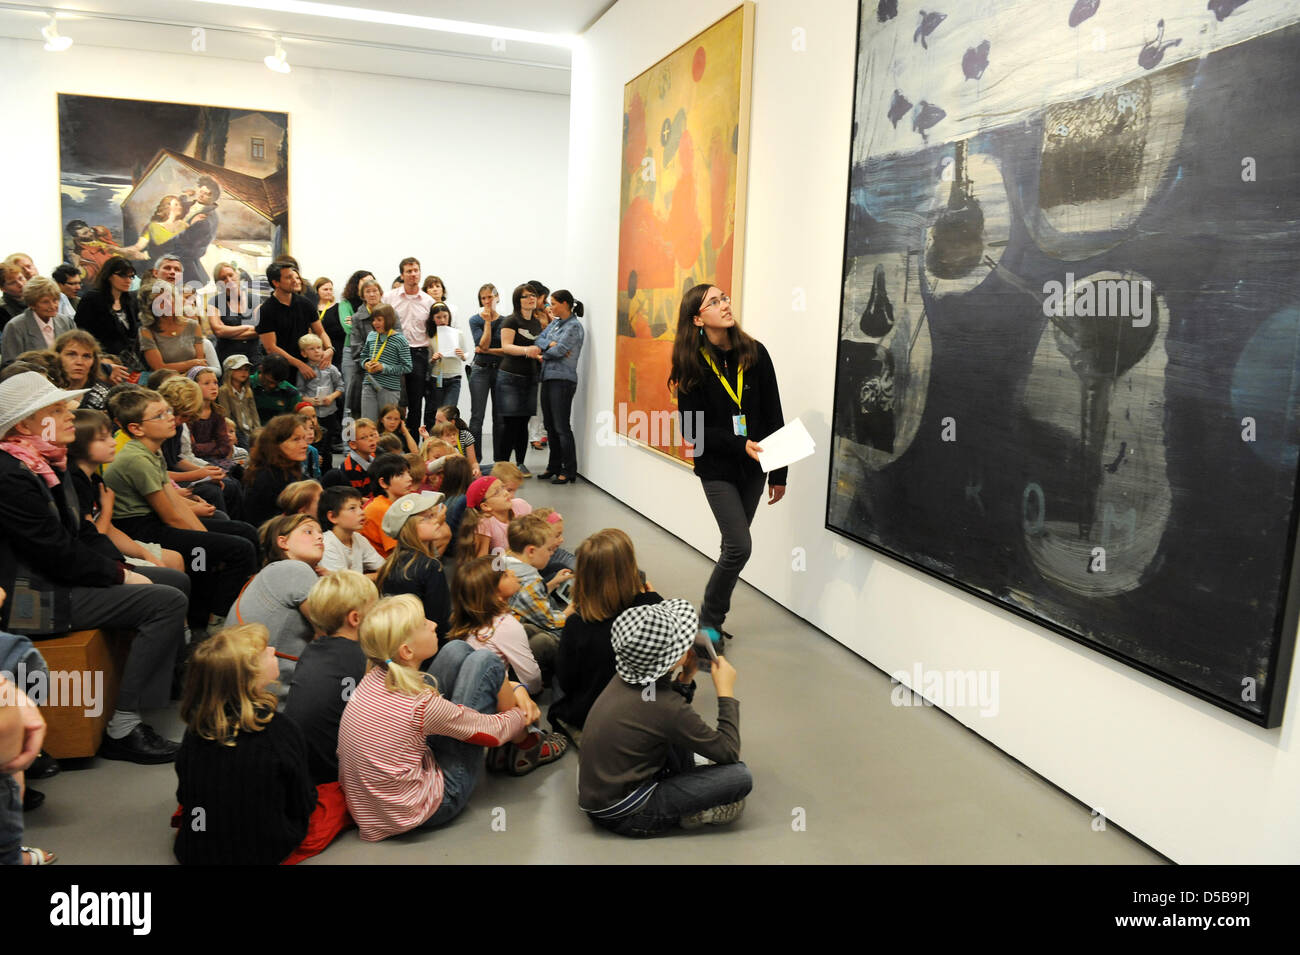 During a tour by children for children, 13 year-old Lisa interprets the paintings 'Dromos' (R) and 'Erl'(C) - Stock Image